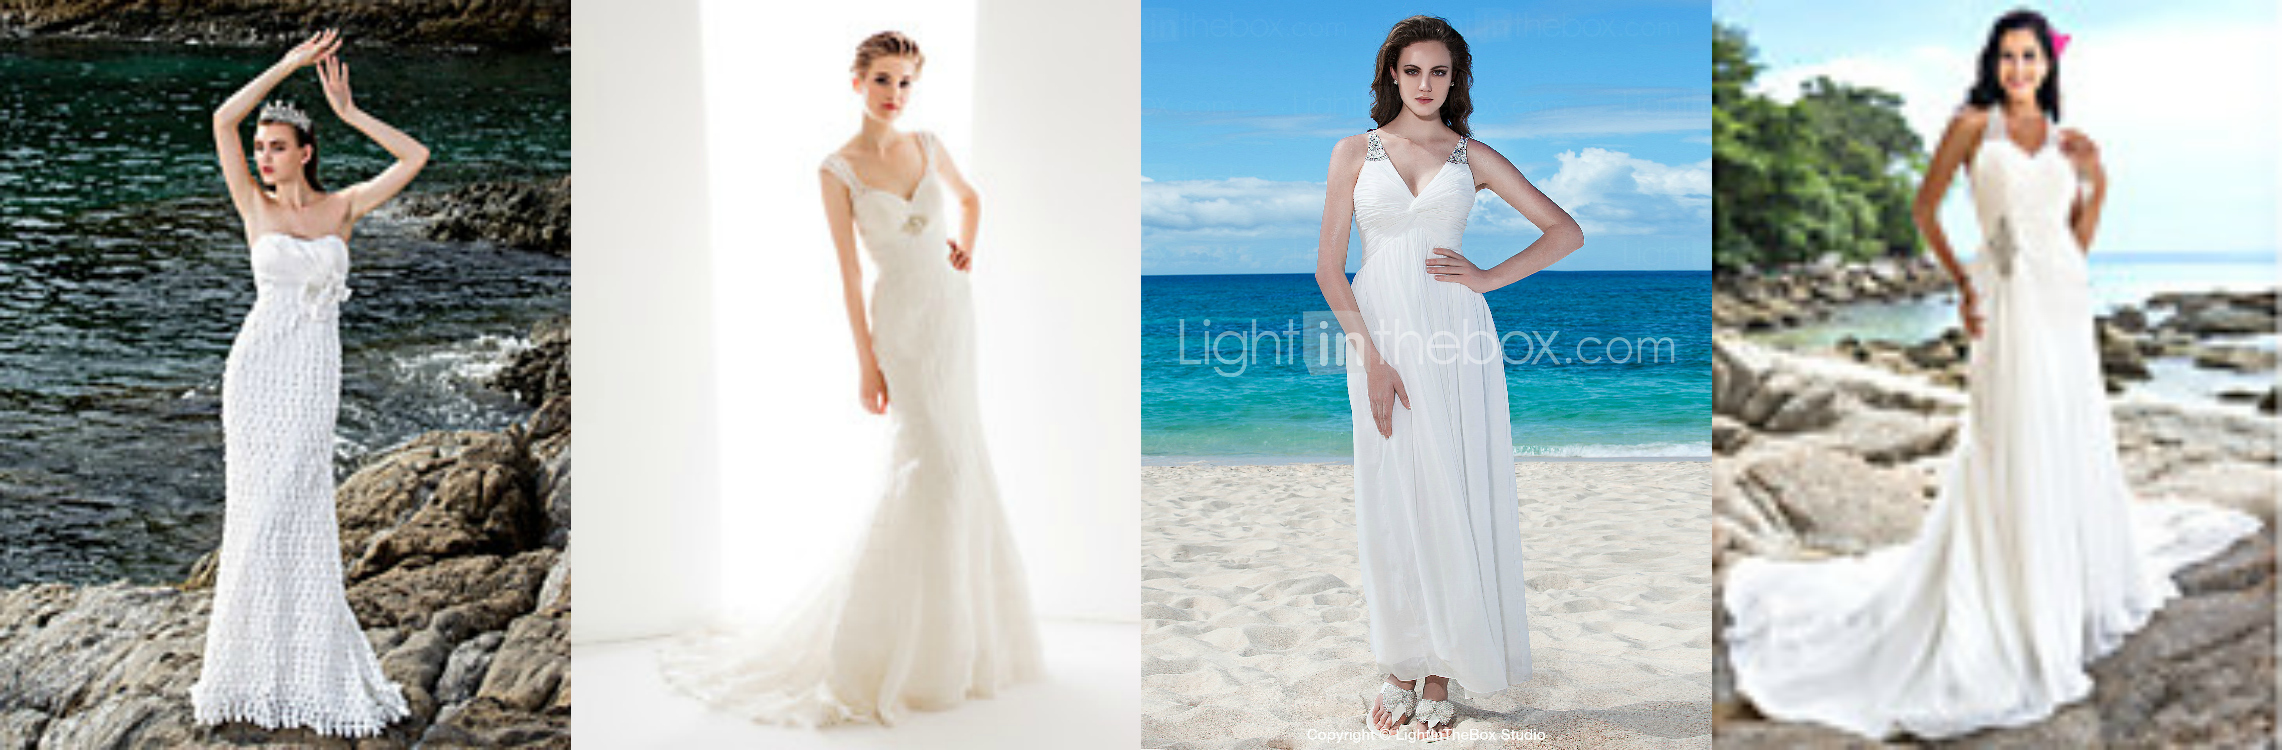 Difference between petite regular sized wedding dresses bella wedding dress styles for petite women junglespirit Images